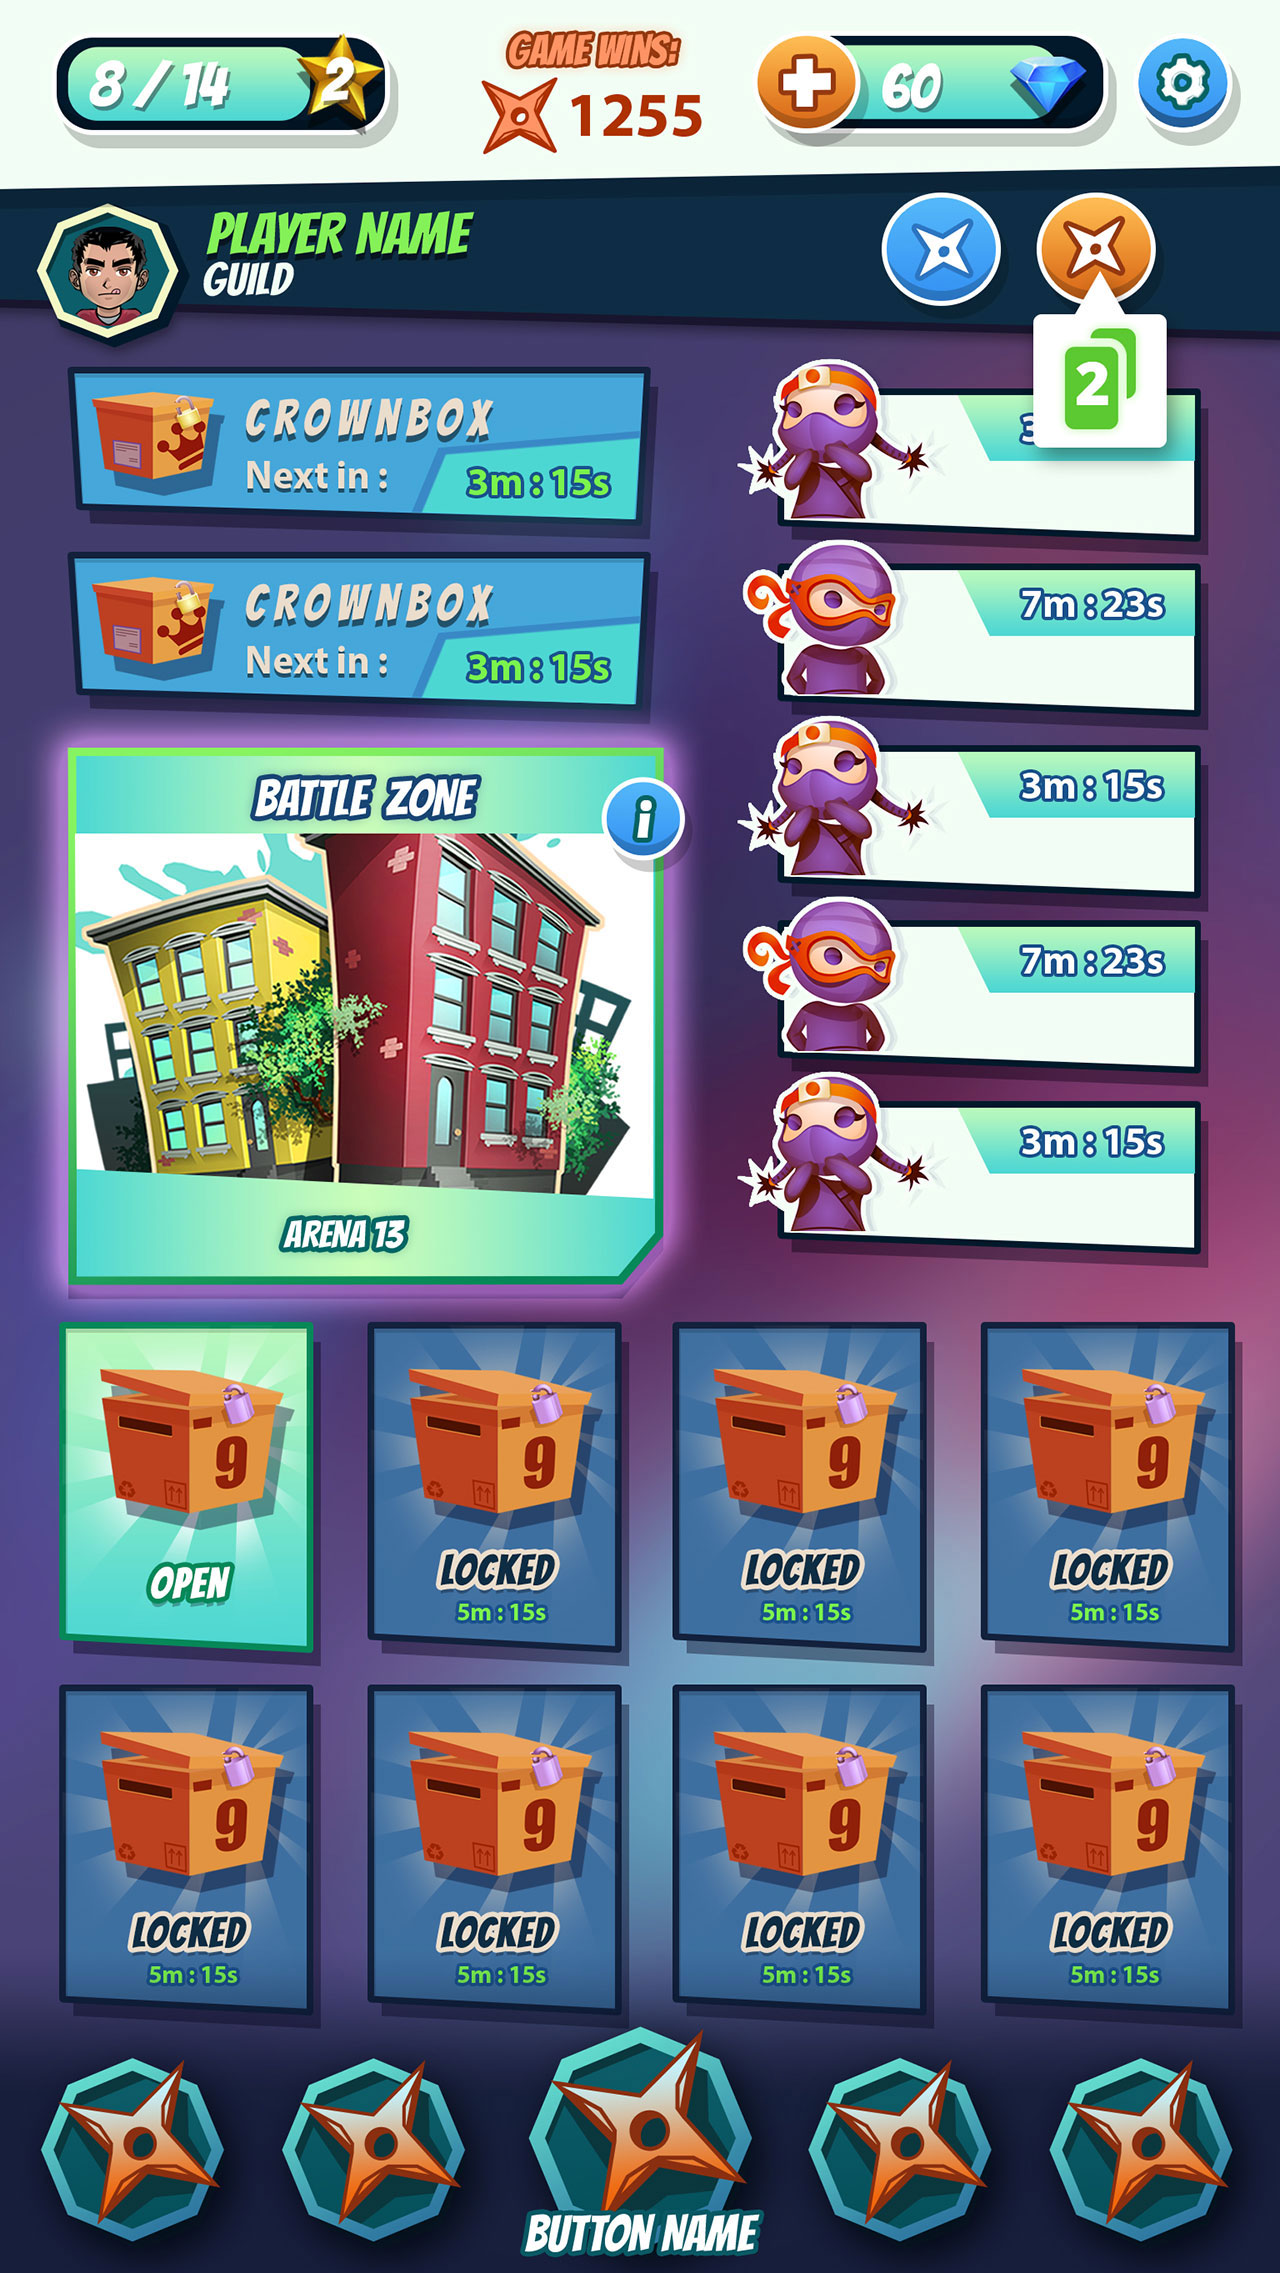 mobile-game-interface-design-ui-ux-concept-gameart-gameinterface-screenH